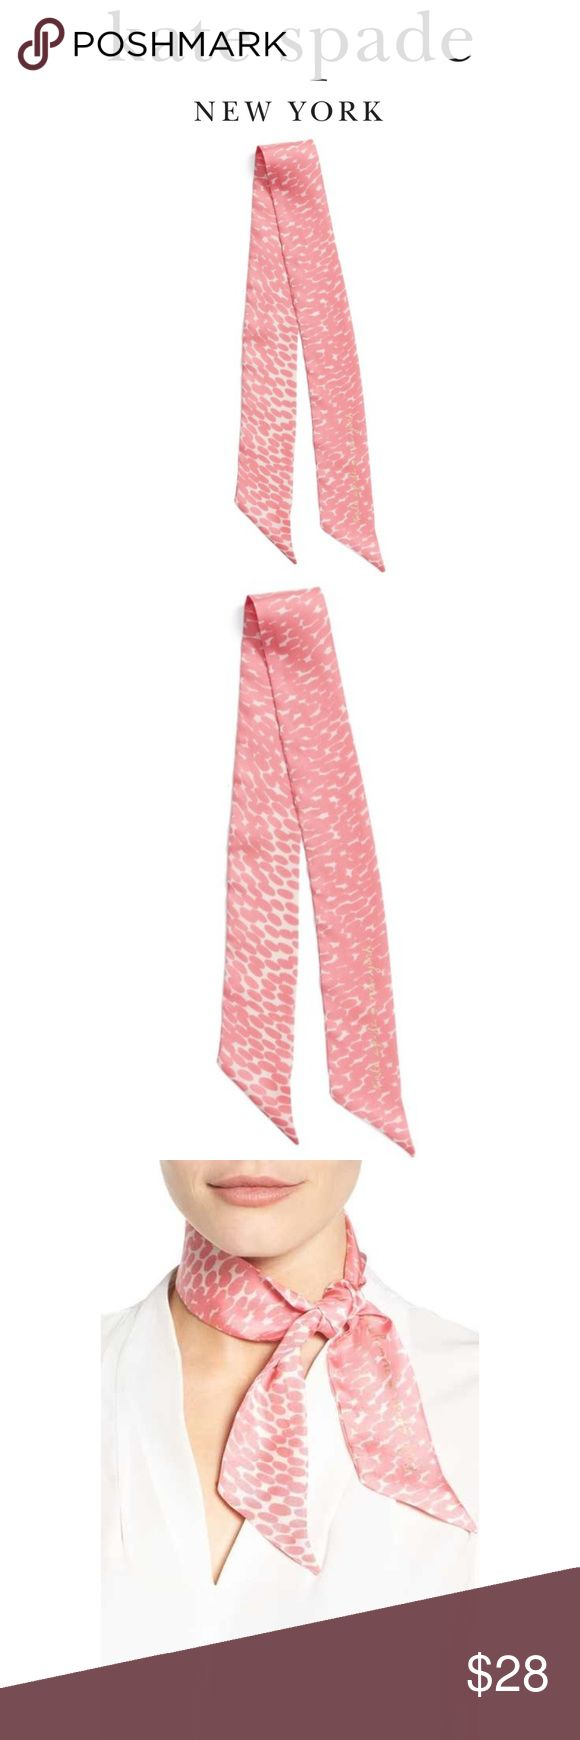 Kate Spade Dappled Silk Scarf Skinny silk scarf. Perfect for a Bag, a scarf, Bandanna, headband. Couple small snags as pictured. Priced accordingly. kate spade Accessories Scarves & Wraps